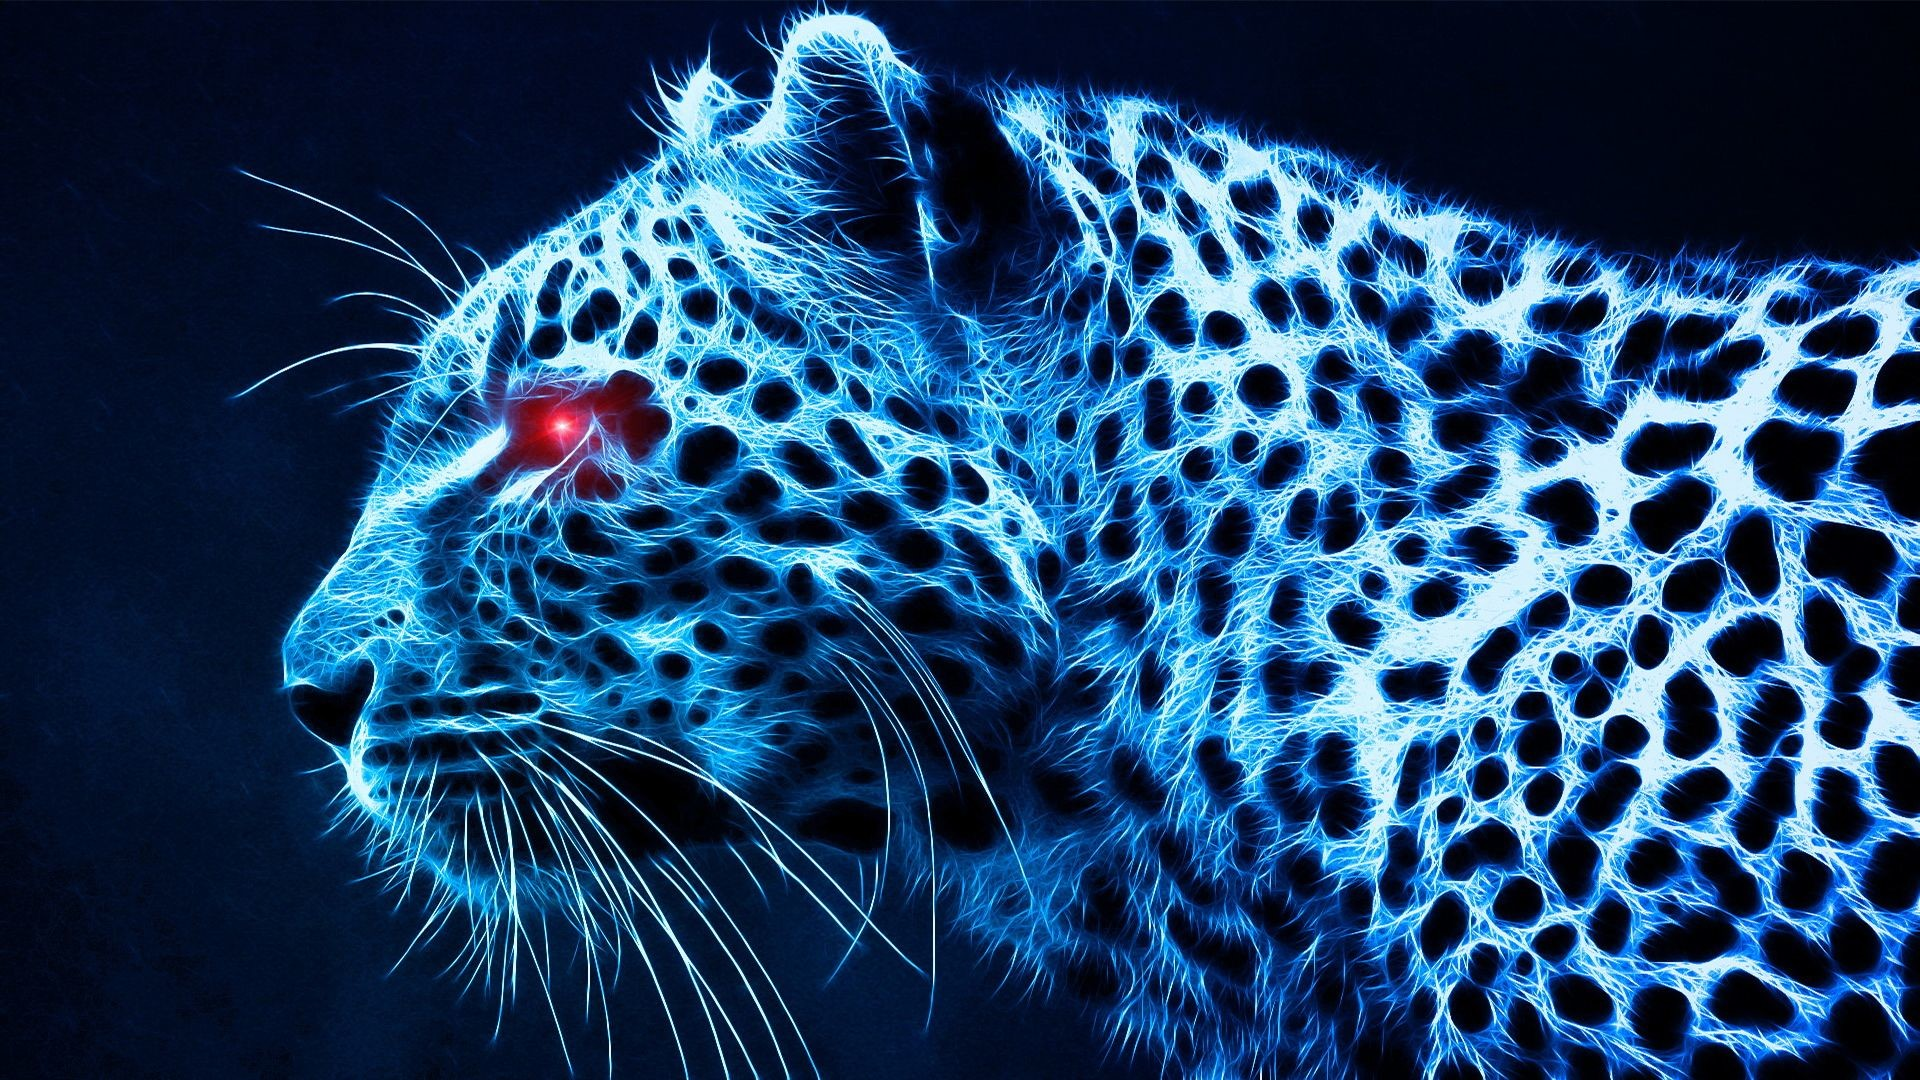 Res: 1920x1080, WallpapersCastle.com | Cheetah Wallpapers Free Download | Page 1